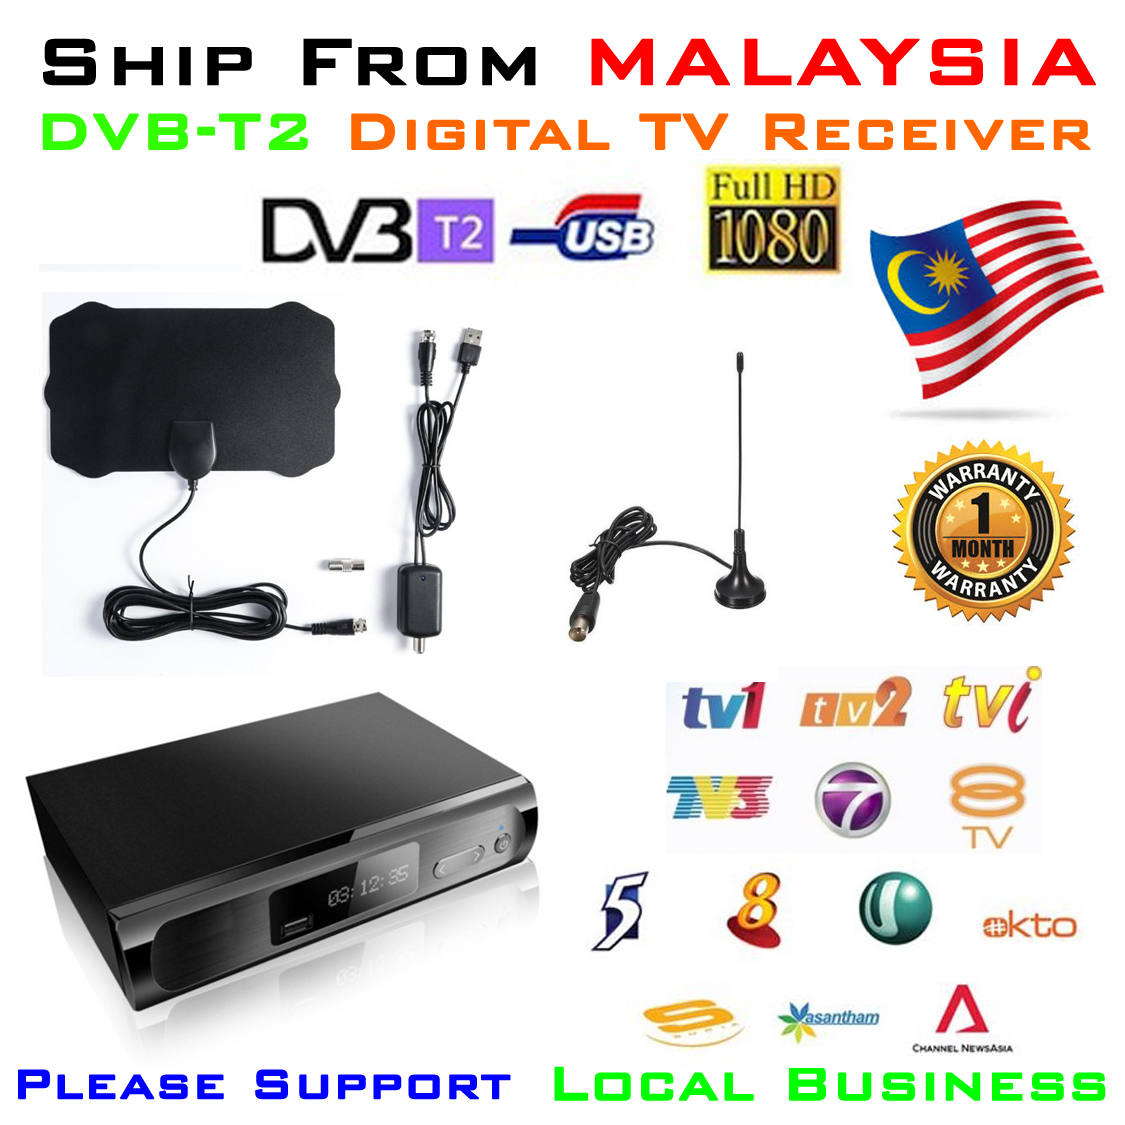 DVB-T2 Receiver decoder with DVB-T2 Antenna